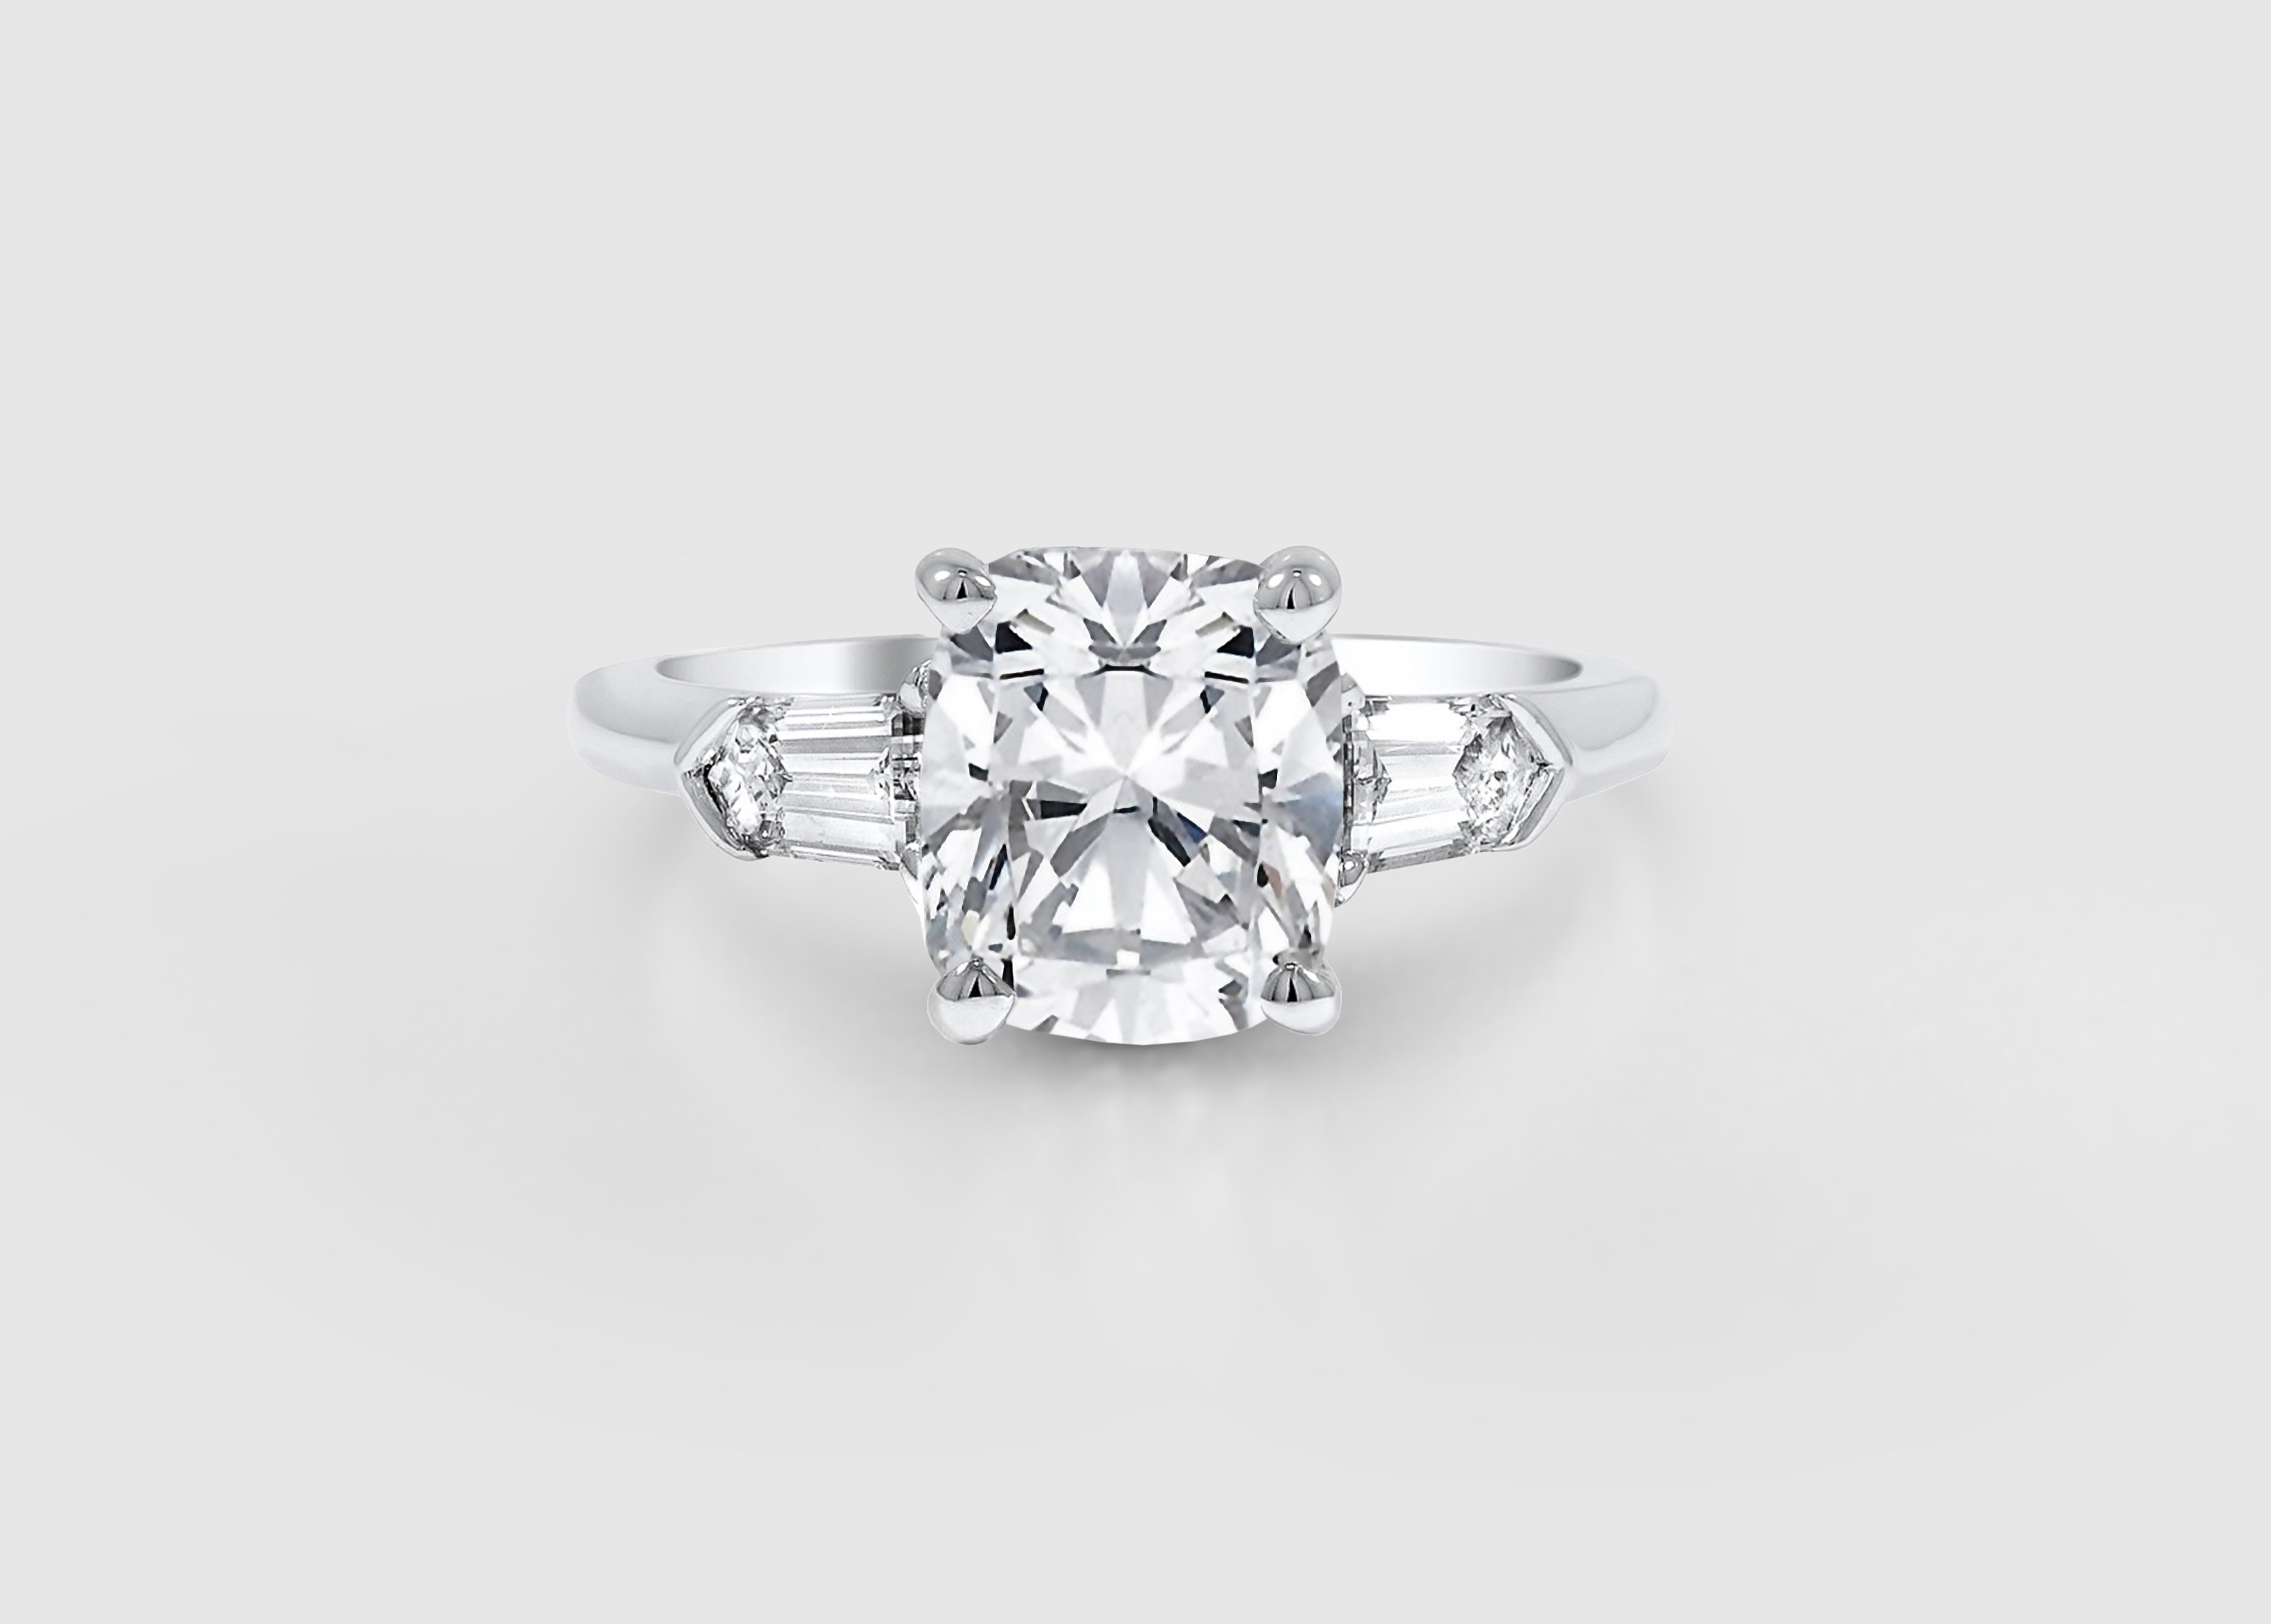 319ed9eca6376 Engagement Ring Trends of the Past